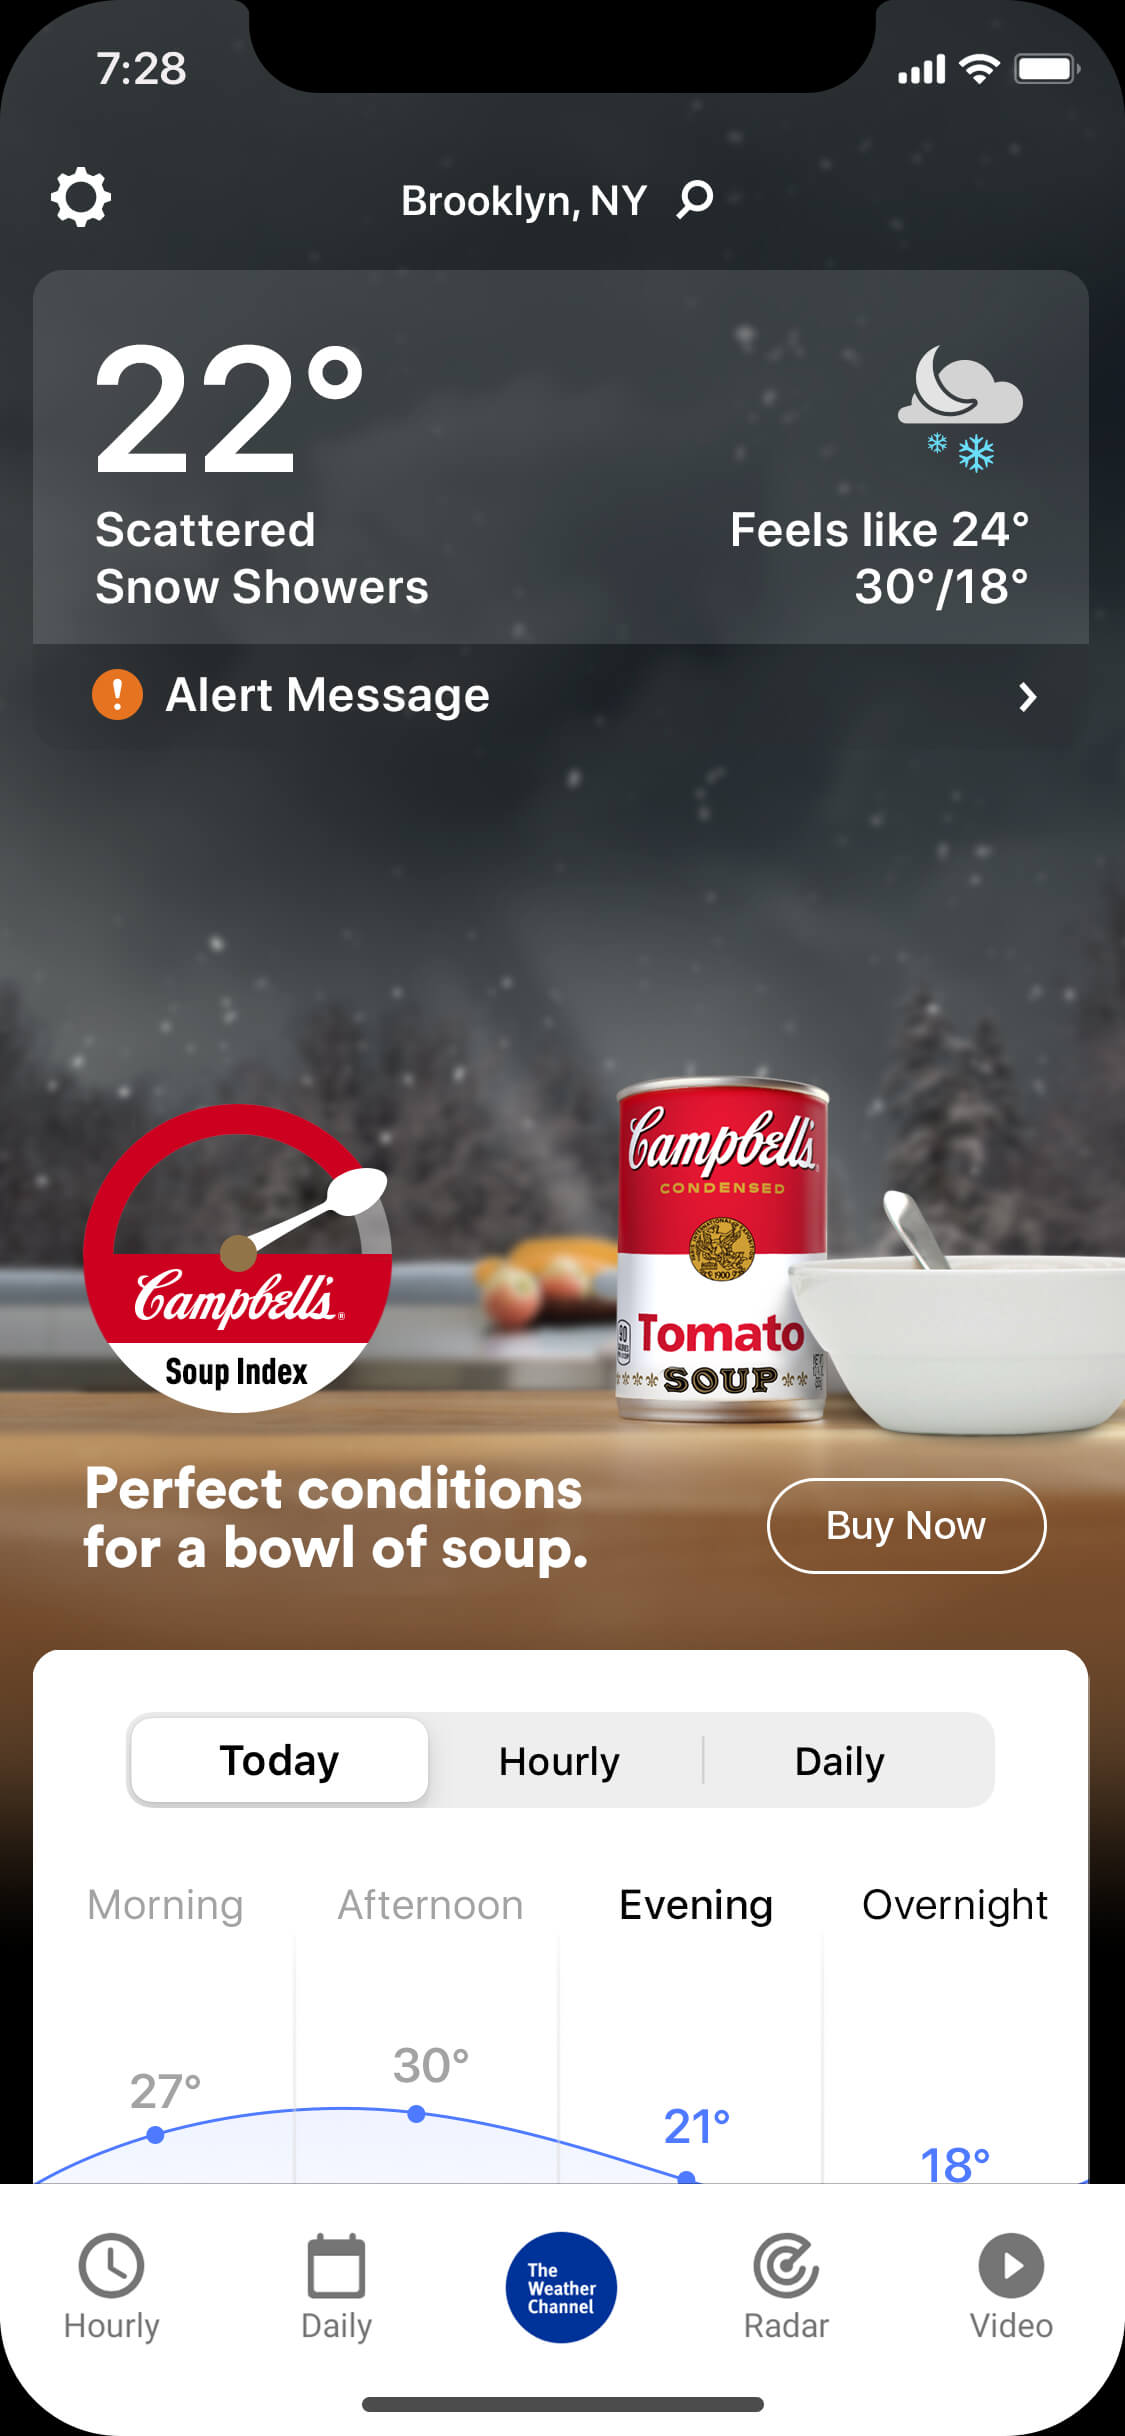 campbells-soup-index-maim_wintry-night